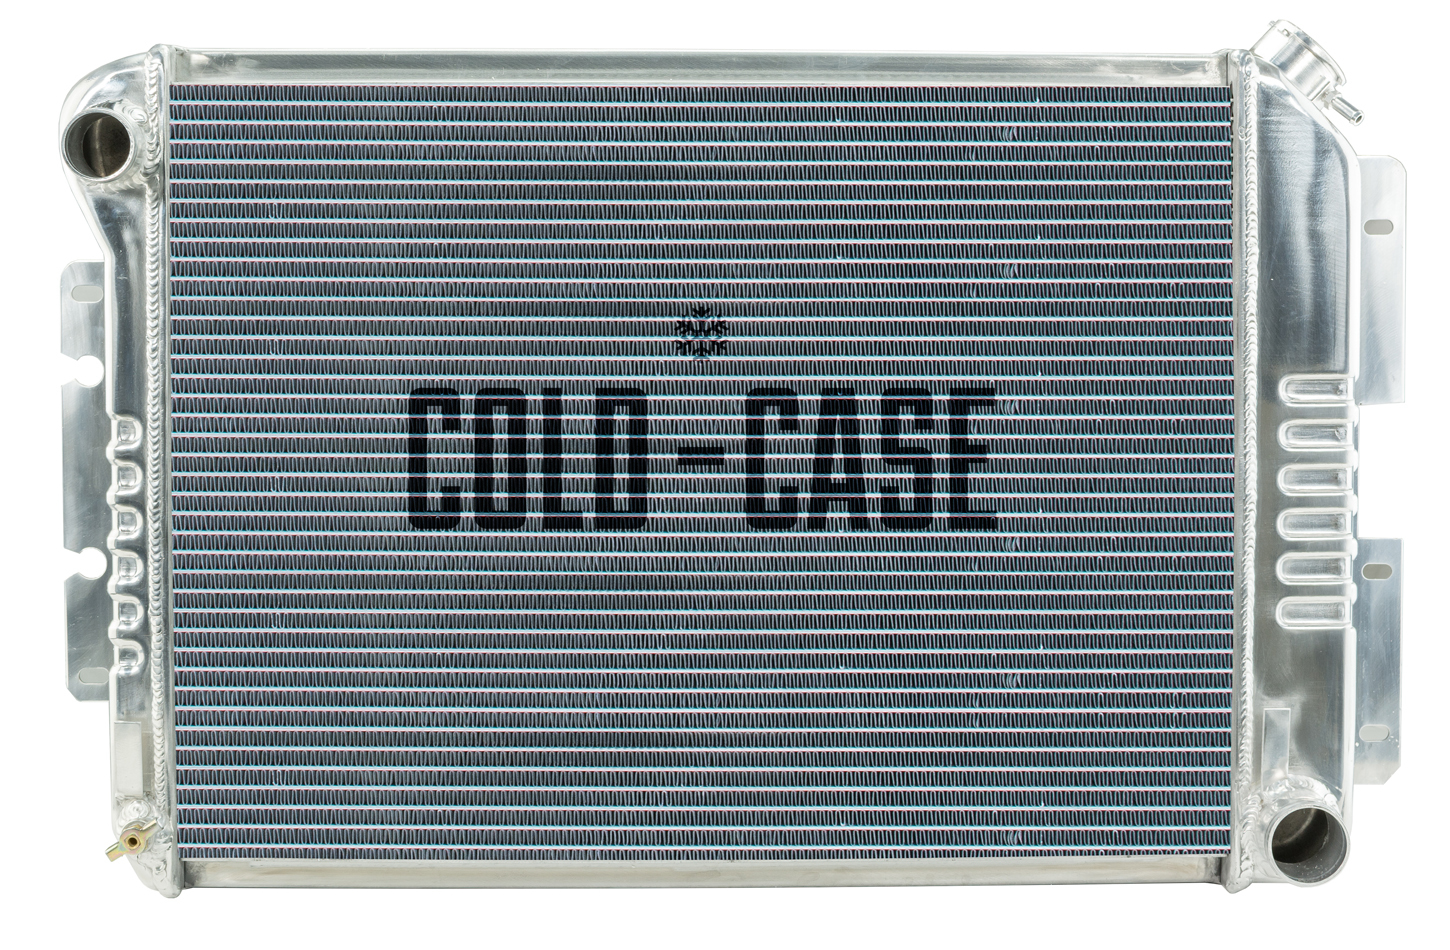 Cold Case Radiators CHC11 Radiator, 27.5 in W x 18.5 in H x 3 in D, Driver Side Inlet, Passenger Side Outlet, Aluminum, Polished, Manual, Big Block Chevy, GM F-Body 1967-68, Each